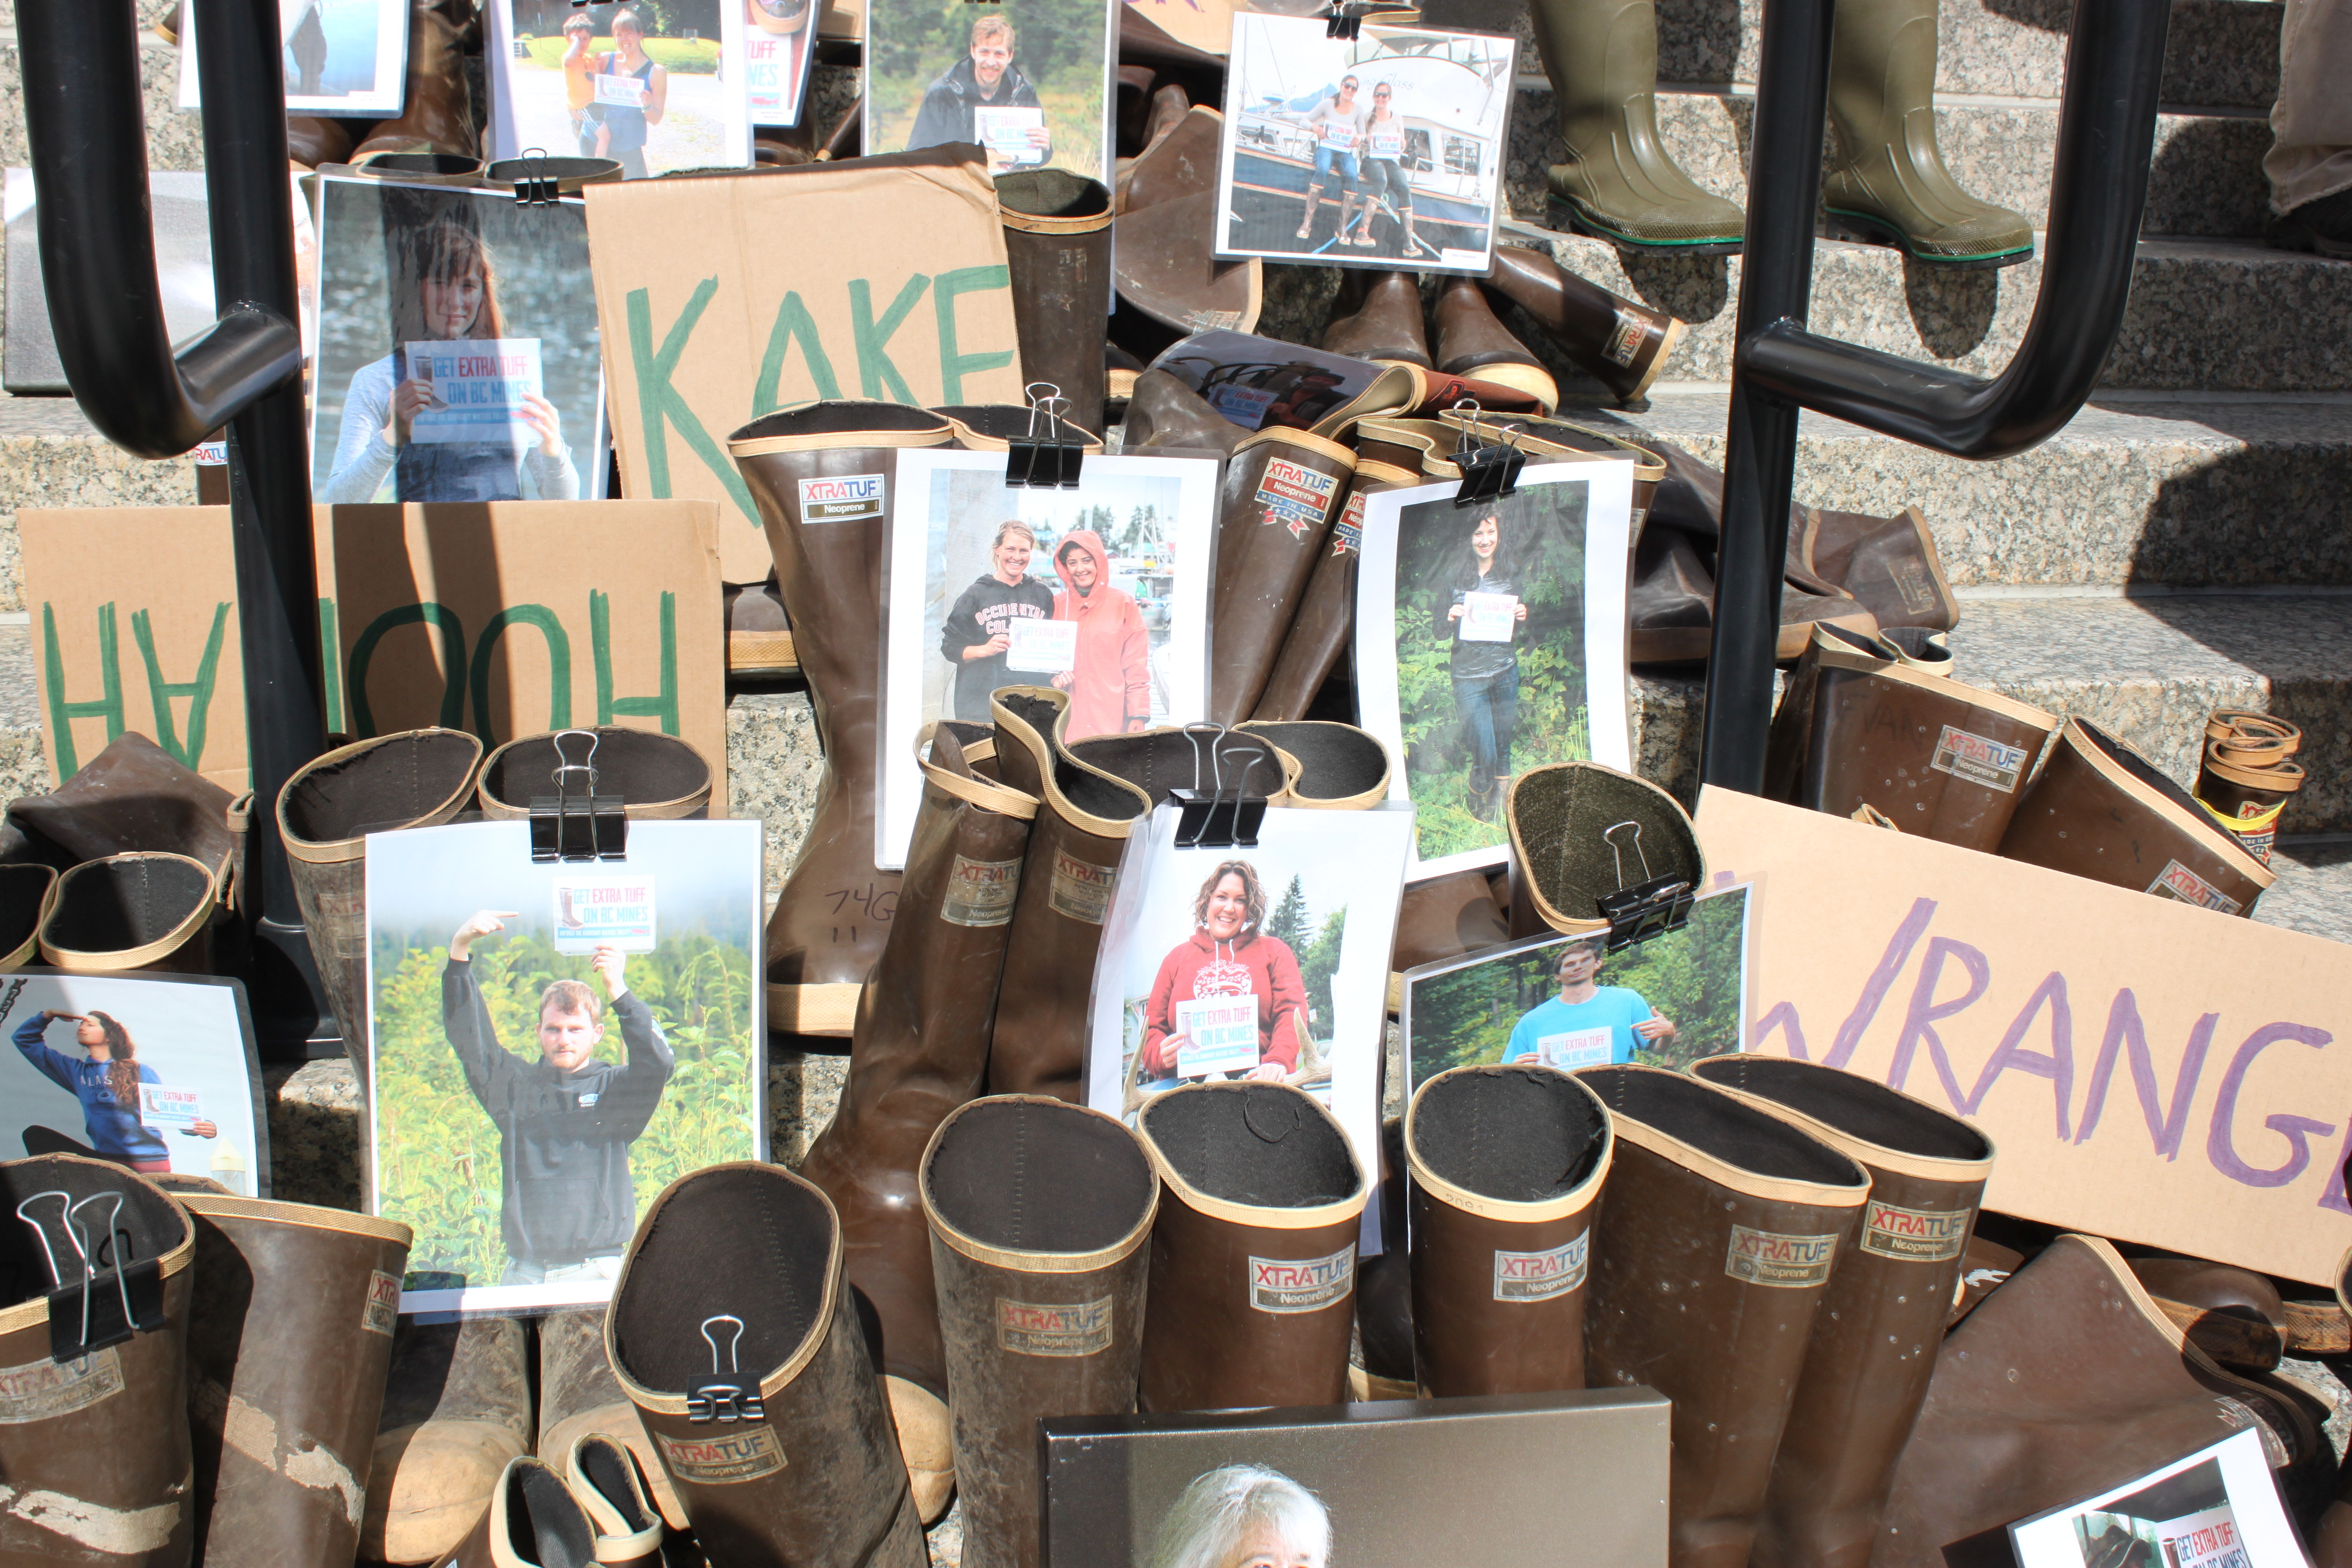 Pictures of Southeast Alaska residents and about a hundred pairs of Xtratuf boots lined the Capitol steps. (Photo by Lisa Phu/KTOO)